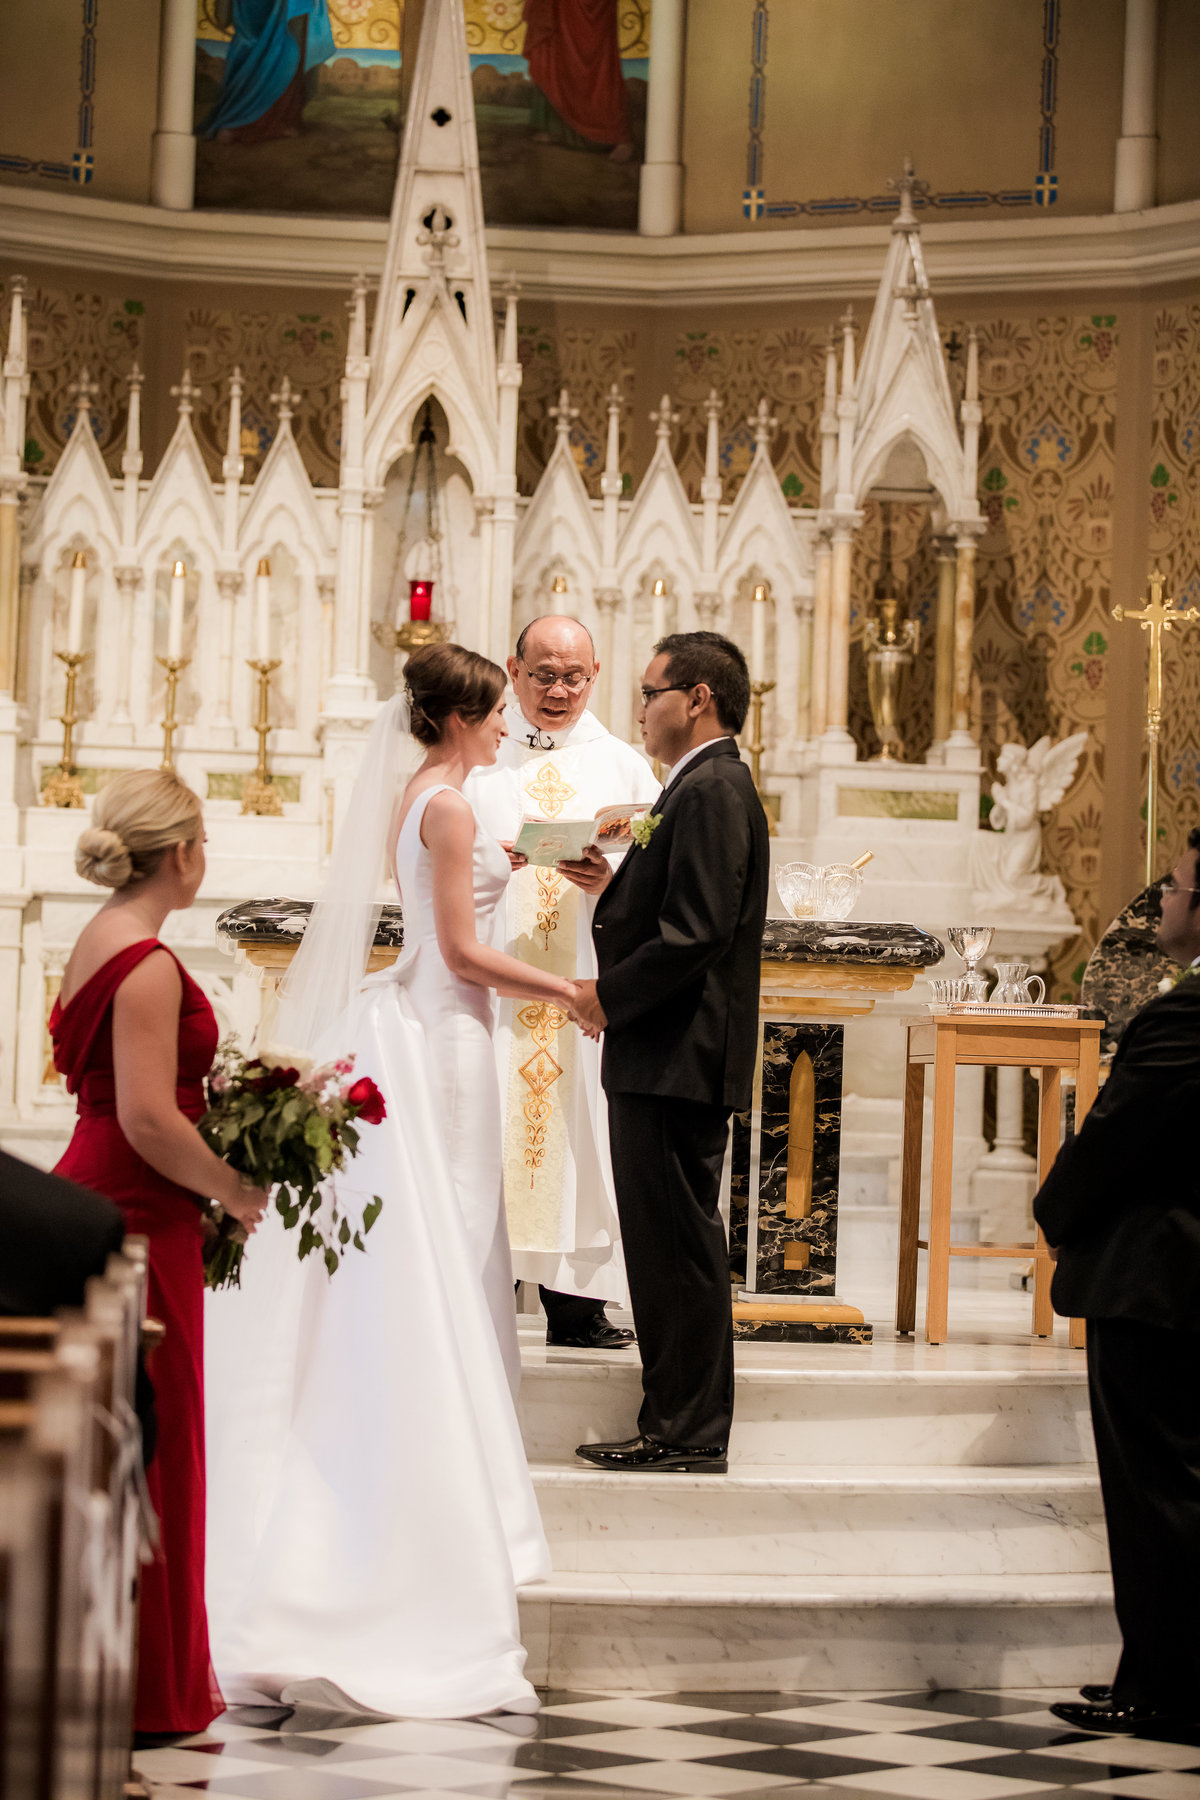 Virginia Bride - Virginia Weddings - Virginia Wedding Photographer - Virginia Wedding Photographers - Soutehrn Bride - Church Wedding - Catholic Wedding - Classic Bride - Nashville Wedding Photographer - Nashville Wedding Photographers015